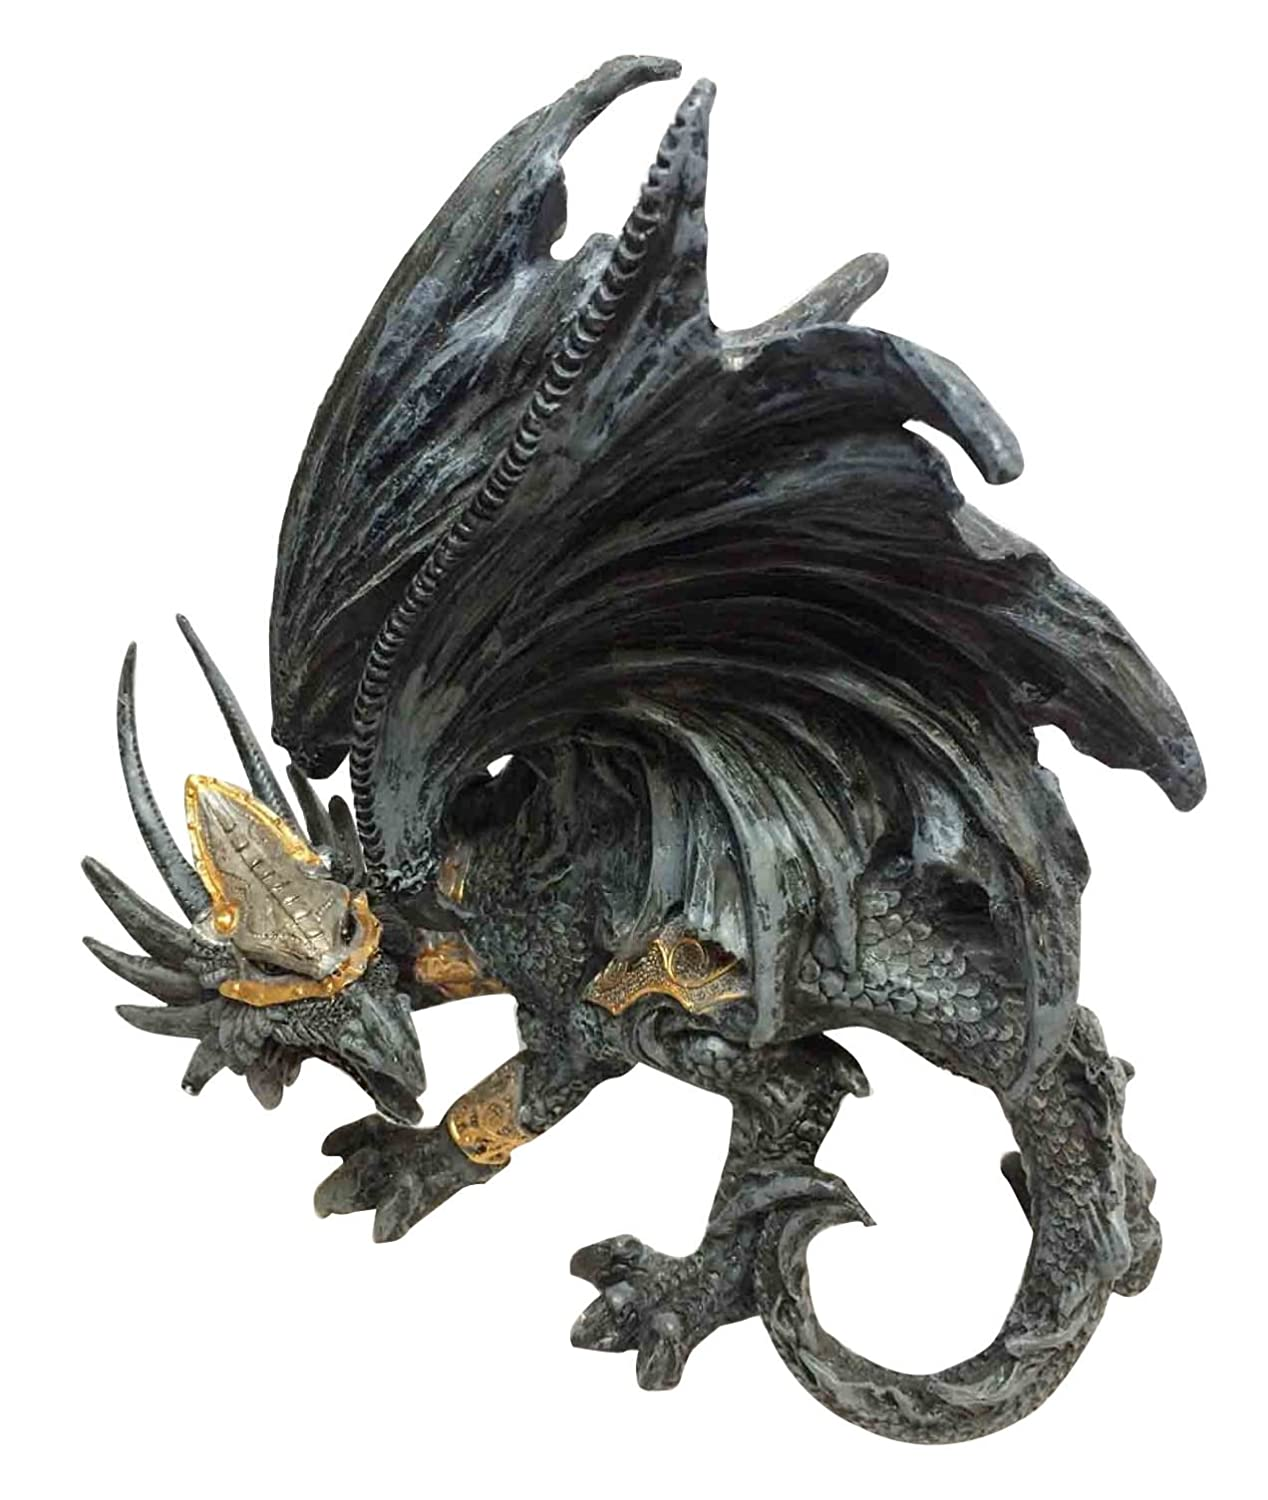 BLACK ARMORED DRAGON CROUCHING IN BATTLE STATUE SCULPTURE ATL